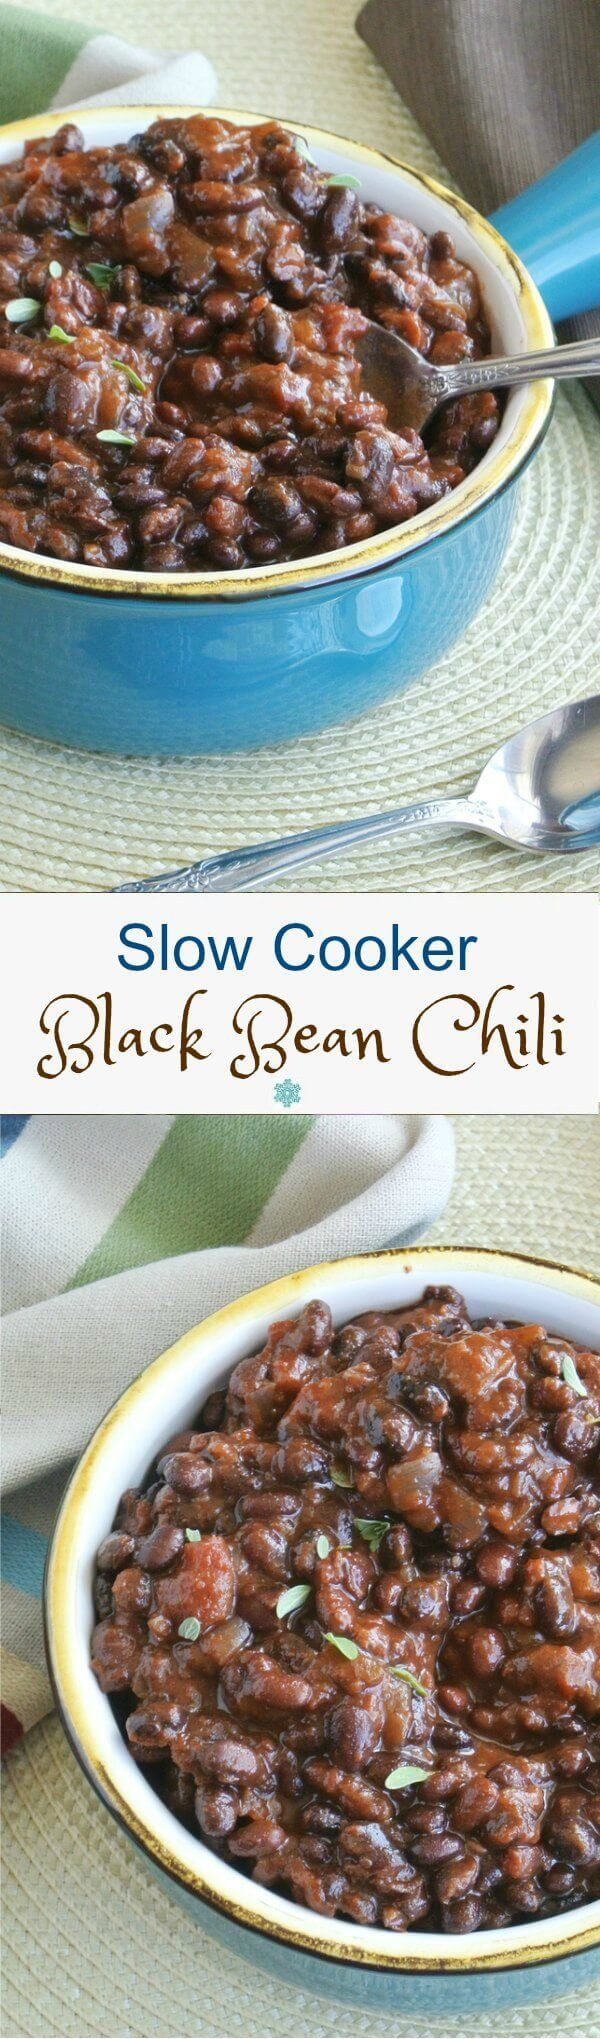 Slow Cooker Black Bean Chili is a great tasting slow cooker dinner and it costs just pennies. The chili has lots of spices for all kinds of flavor. ~ http://veganinthefreezer.com